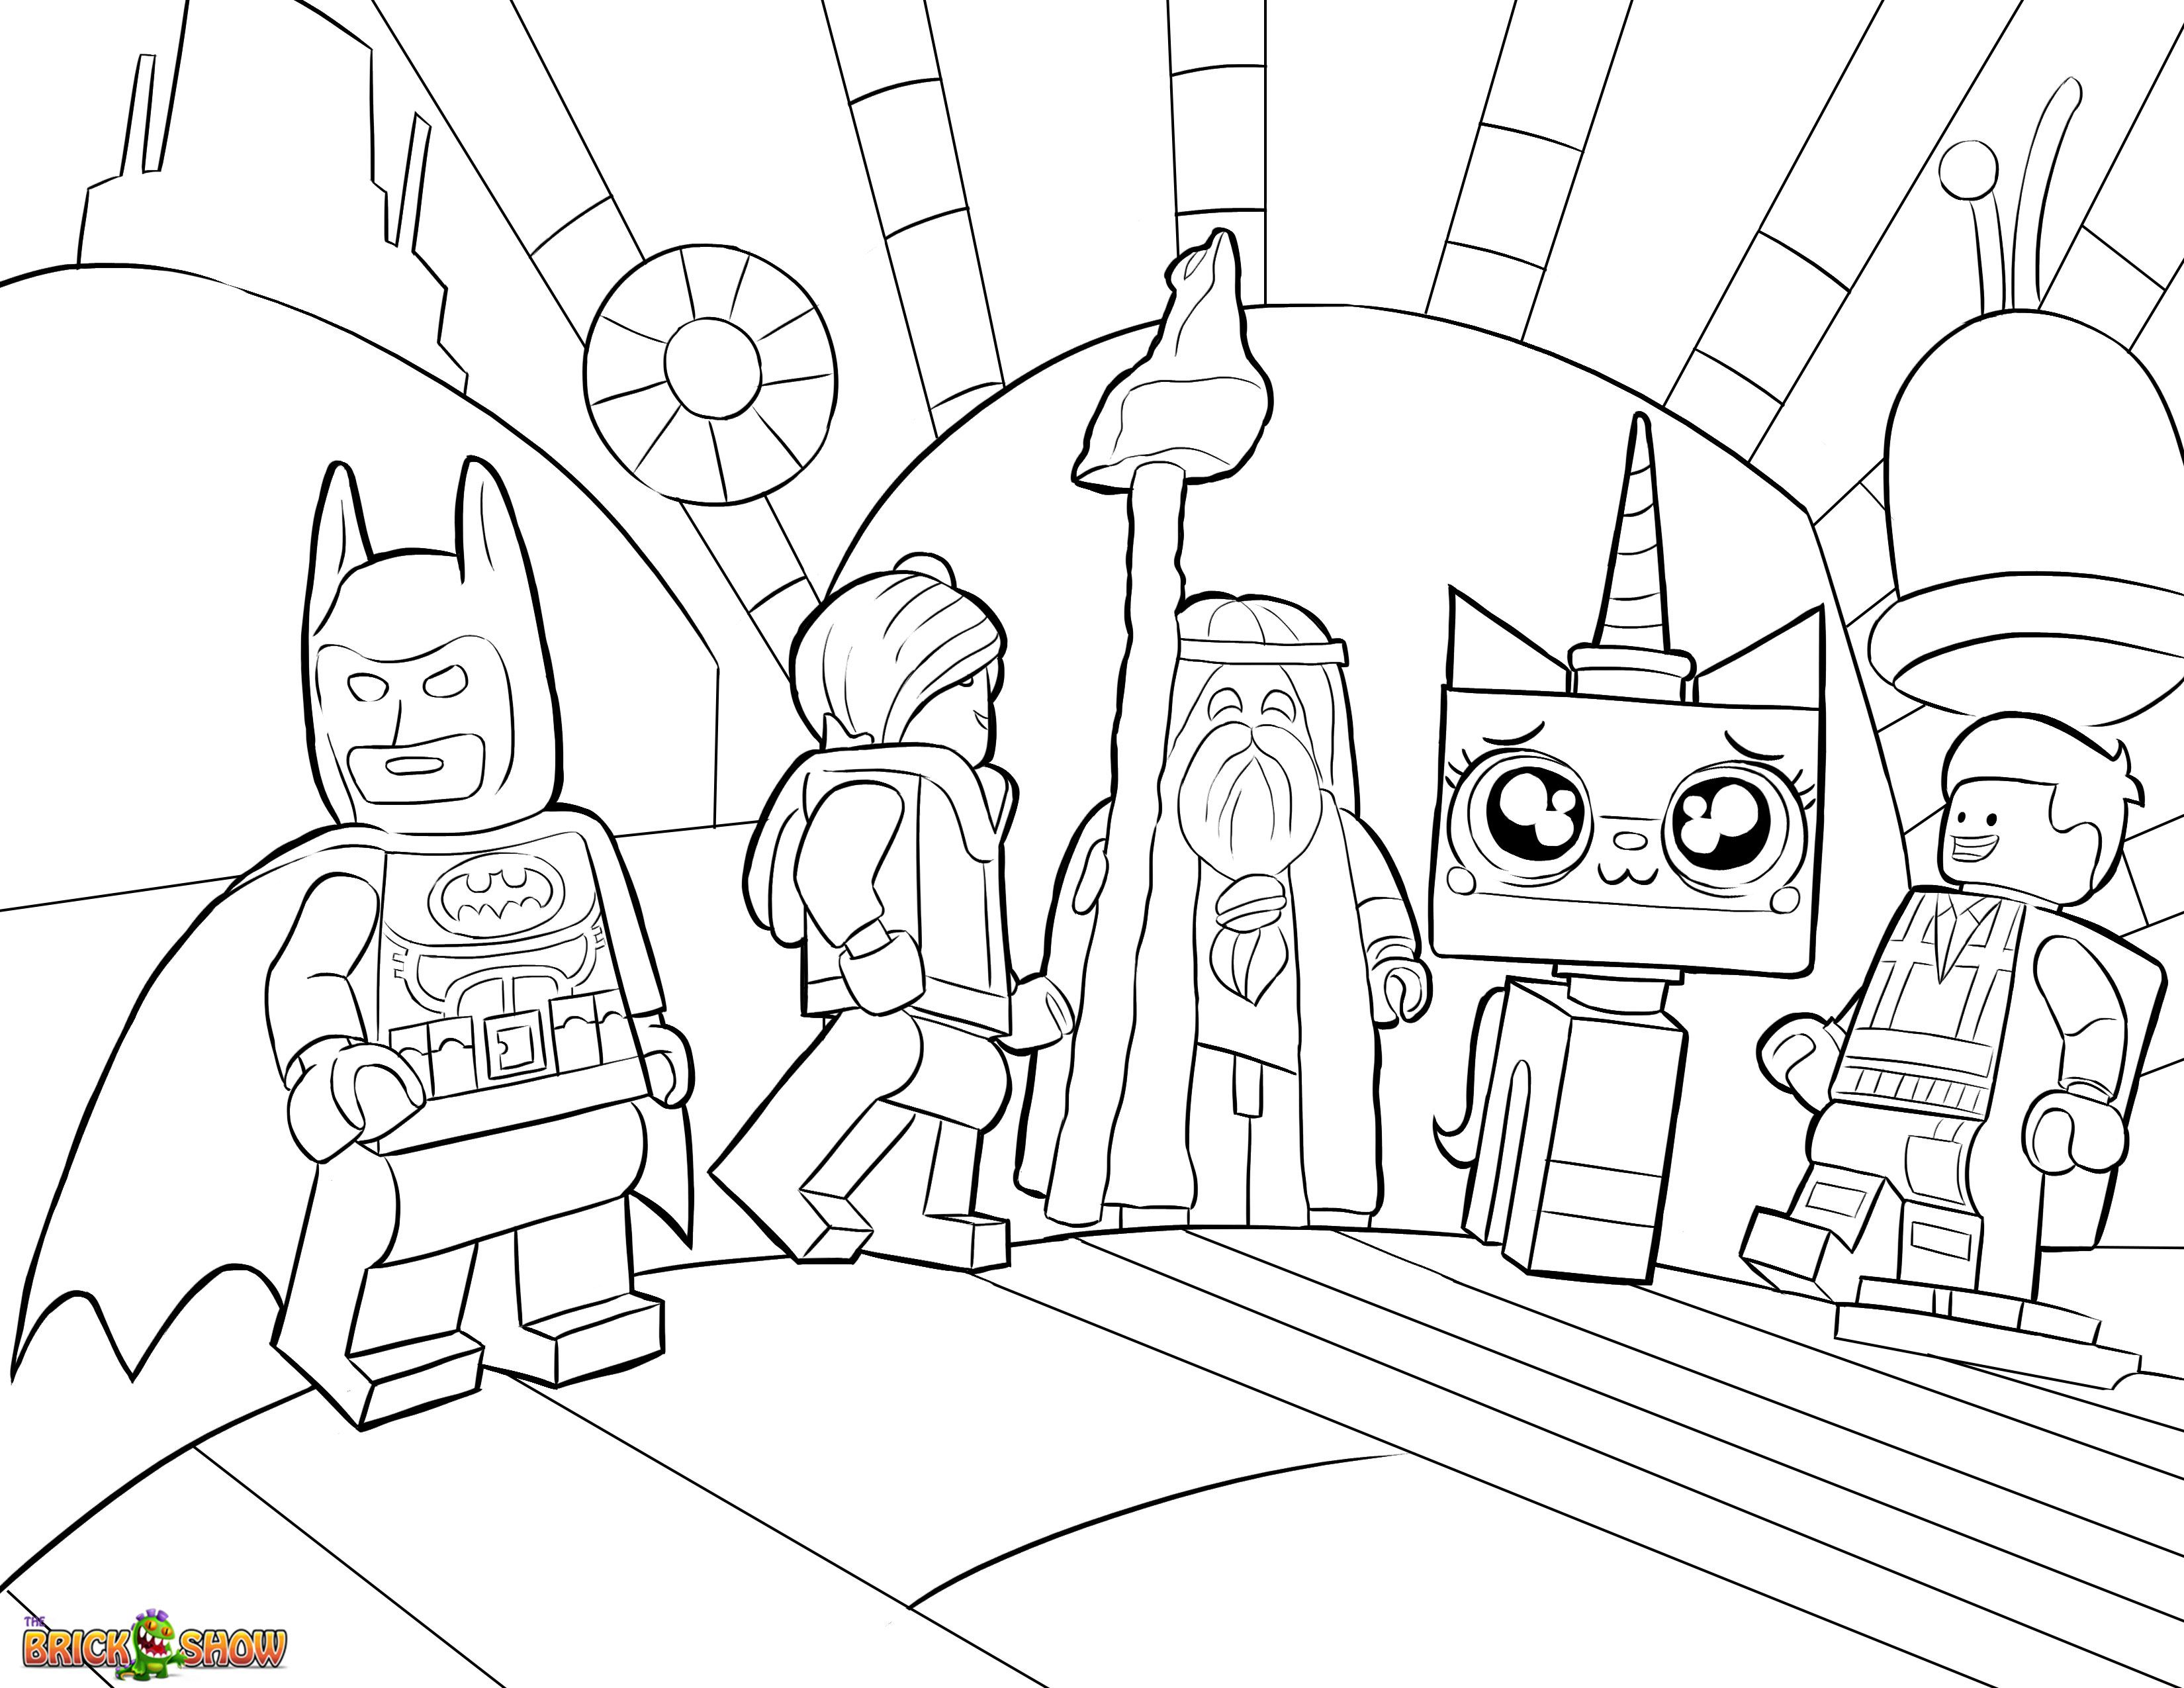 lego friends olivia coloring pages at getdrawings  free